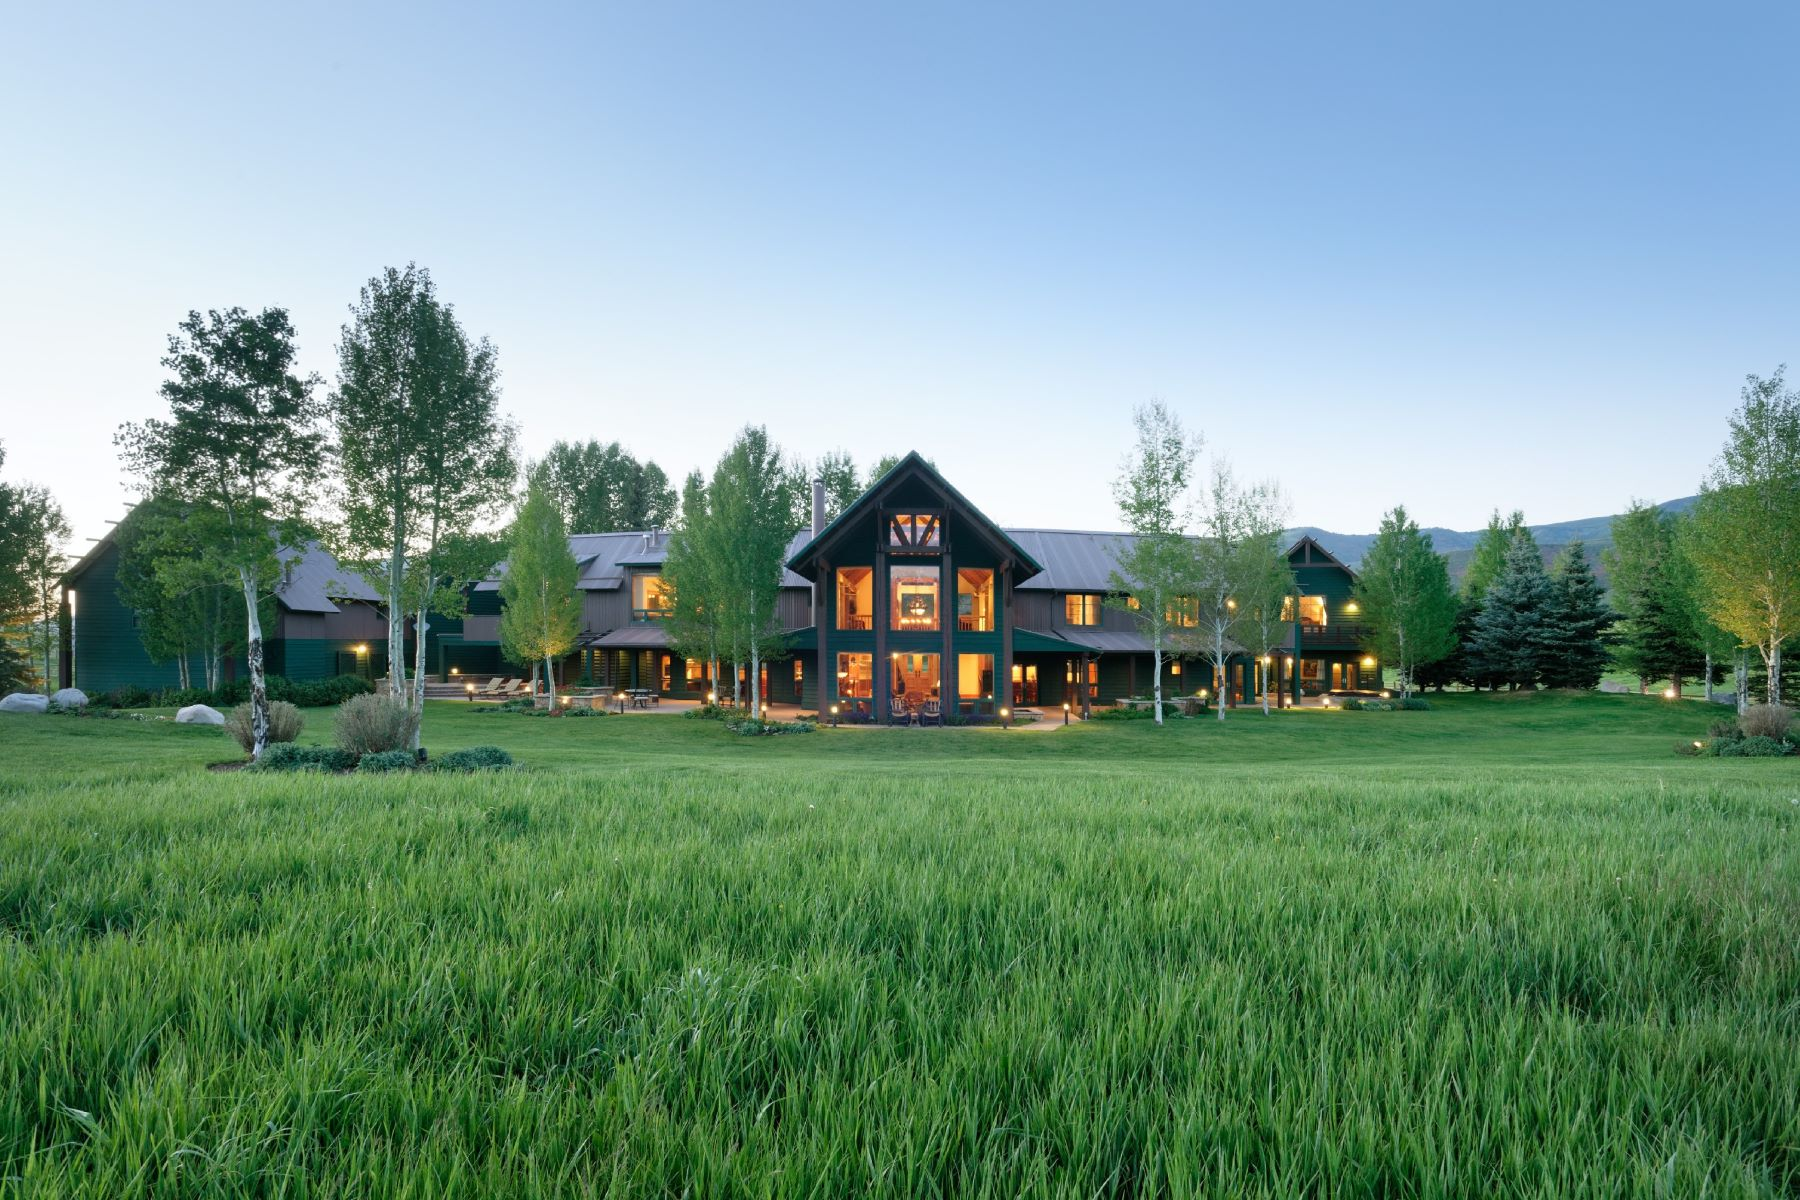 Single Family Home for Active at The Pastoral Life 910 White Star Drive Aspen, Colorado 81611 United States